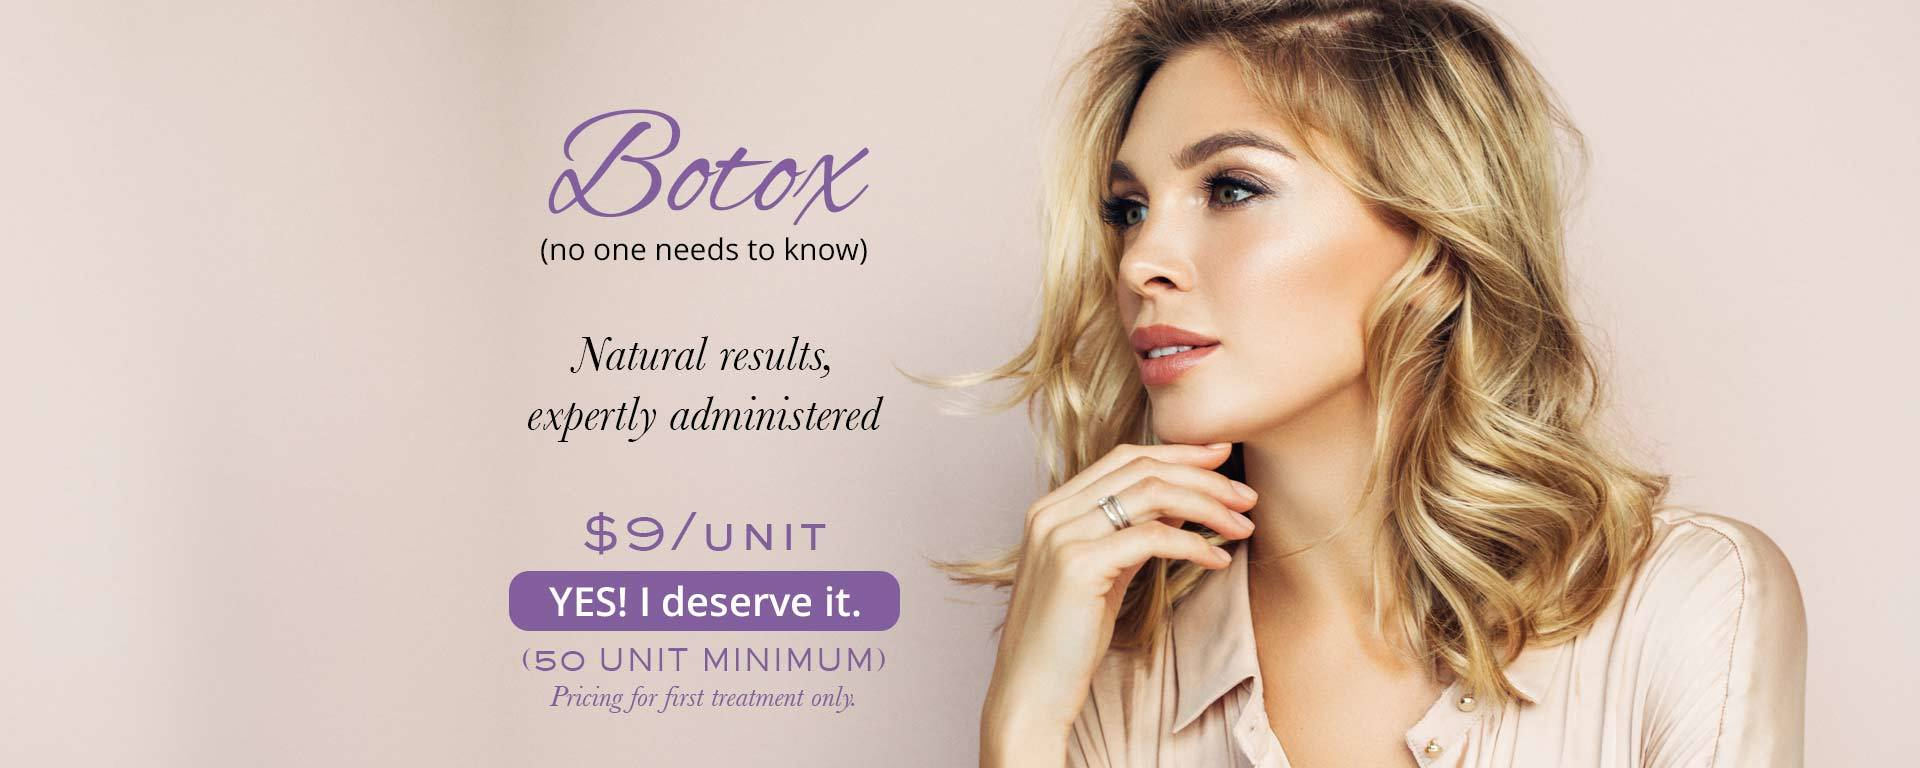 Botox, no one needs to know. Natural results, expertly administered. $9/unit. YES! I deserve it. (50 unit minimum - first treatment only.)